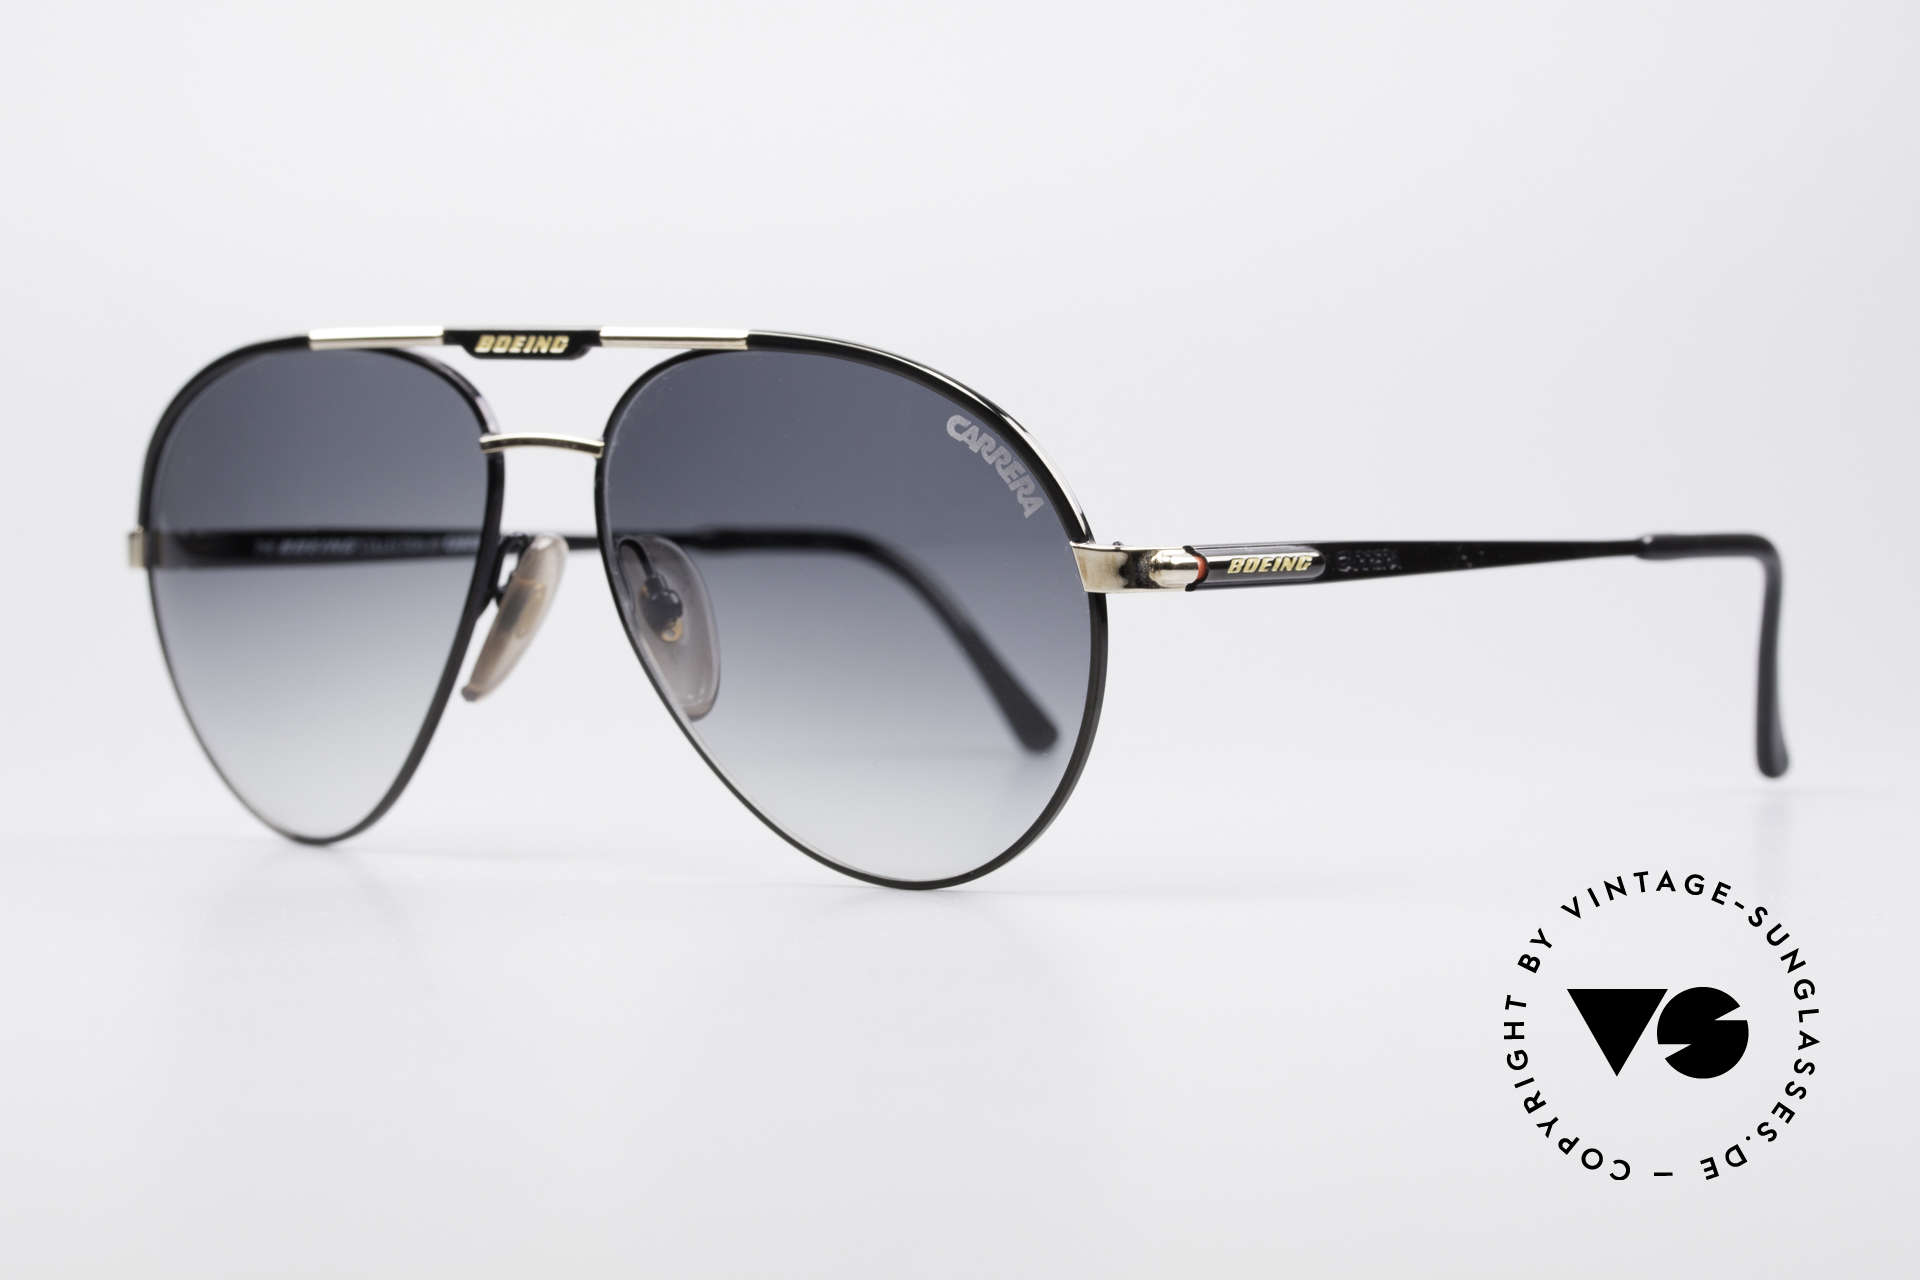 Boeing 5733 Rare 80's Pilots Shades Men, in the 80's, exclusively produced for the Boeing pilots, Made for Men